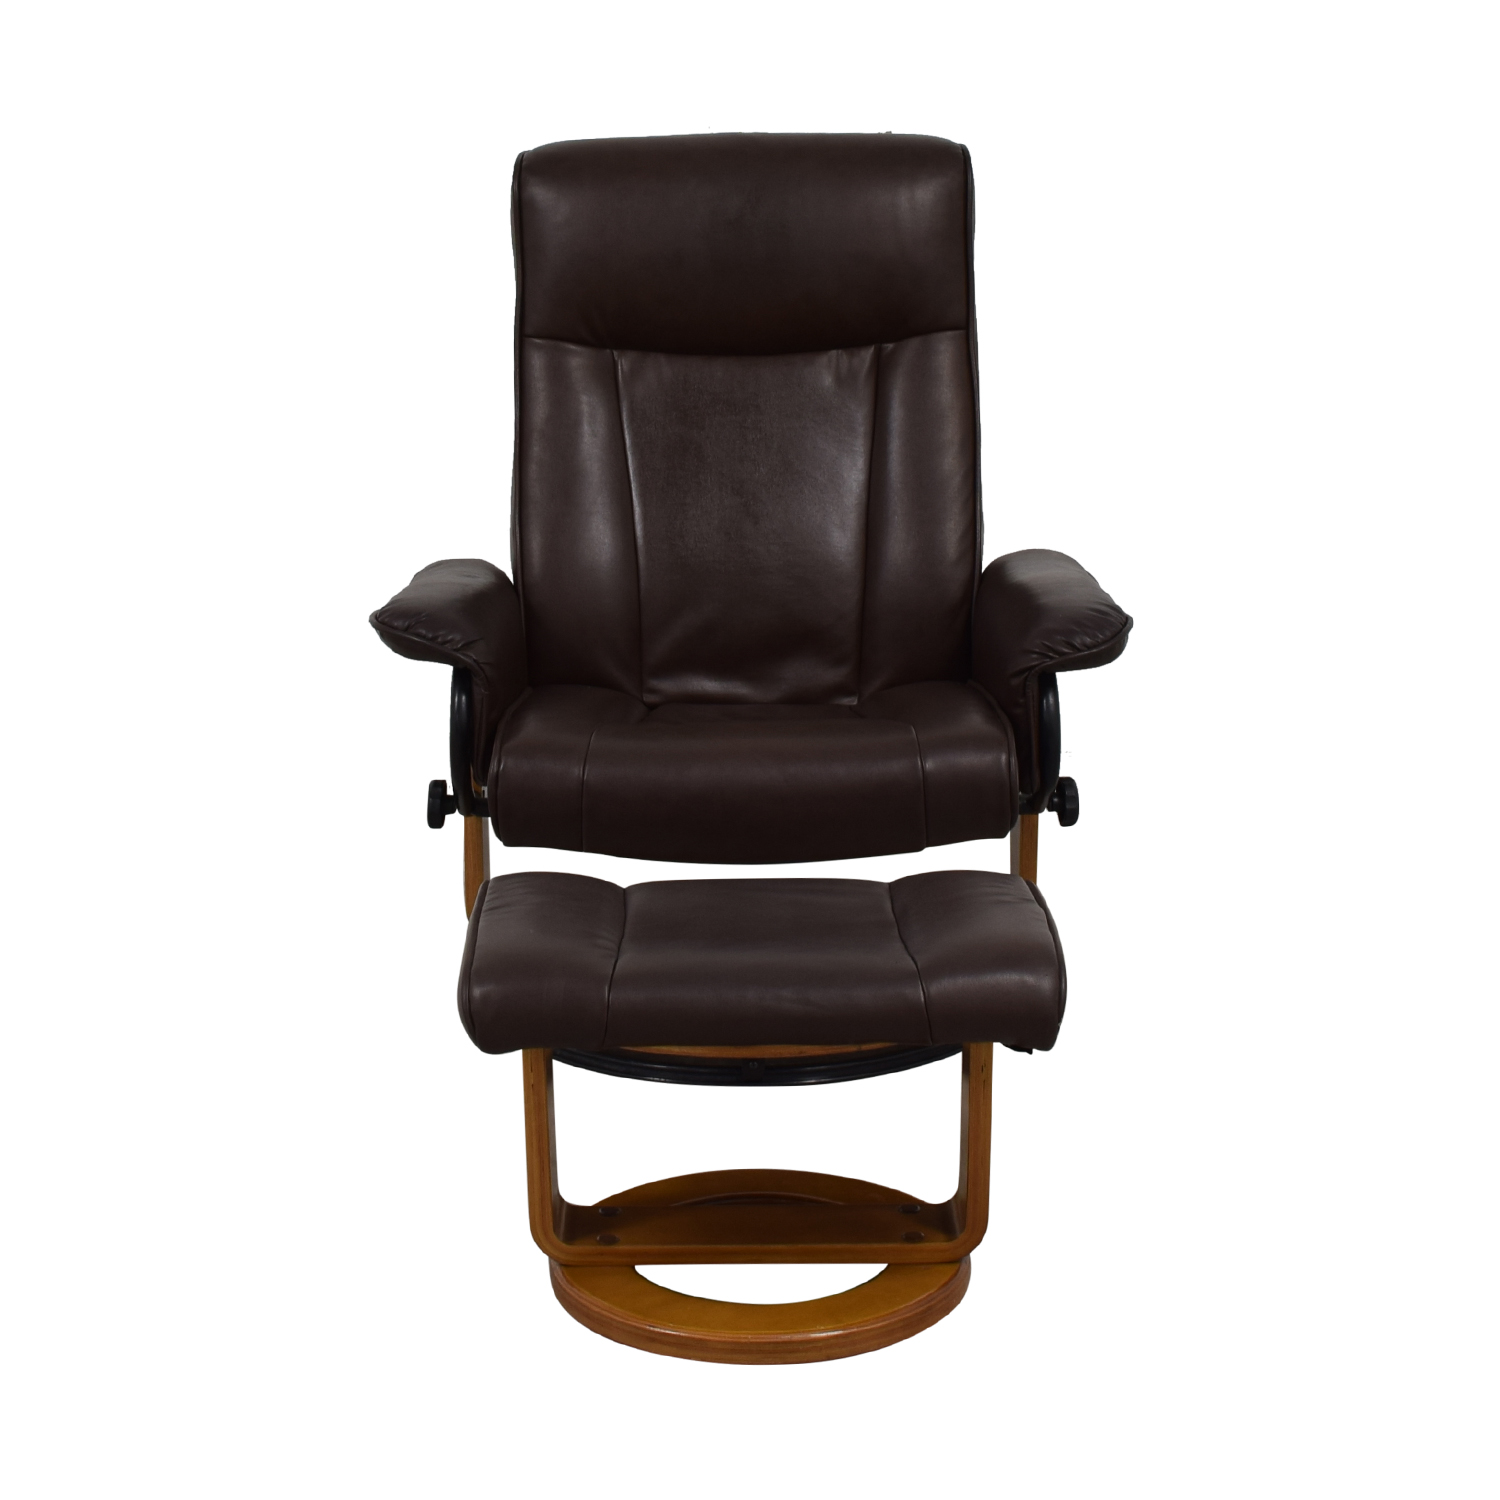 Brown Leather Recliner and Ottoman dimensions